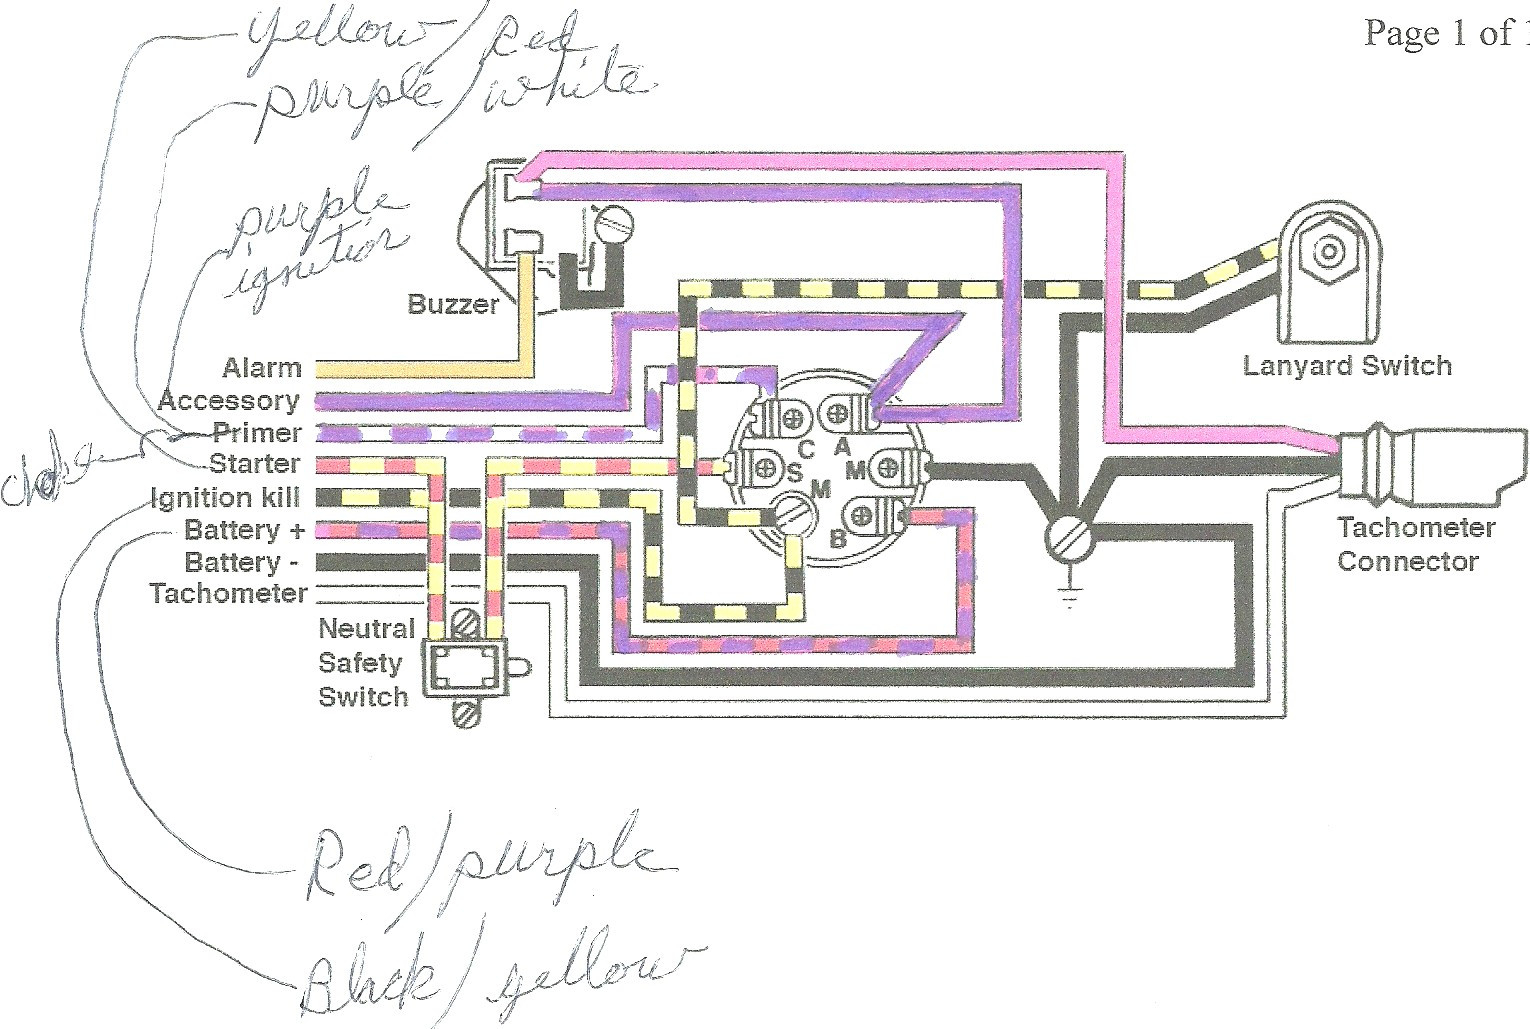 wiring diagram for mercury outboard motor Download-mercury outboard wiring harness diagram Download switch wiring diagram on mercury 60hp outboard motor wiring 4-r